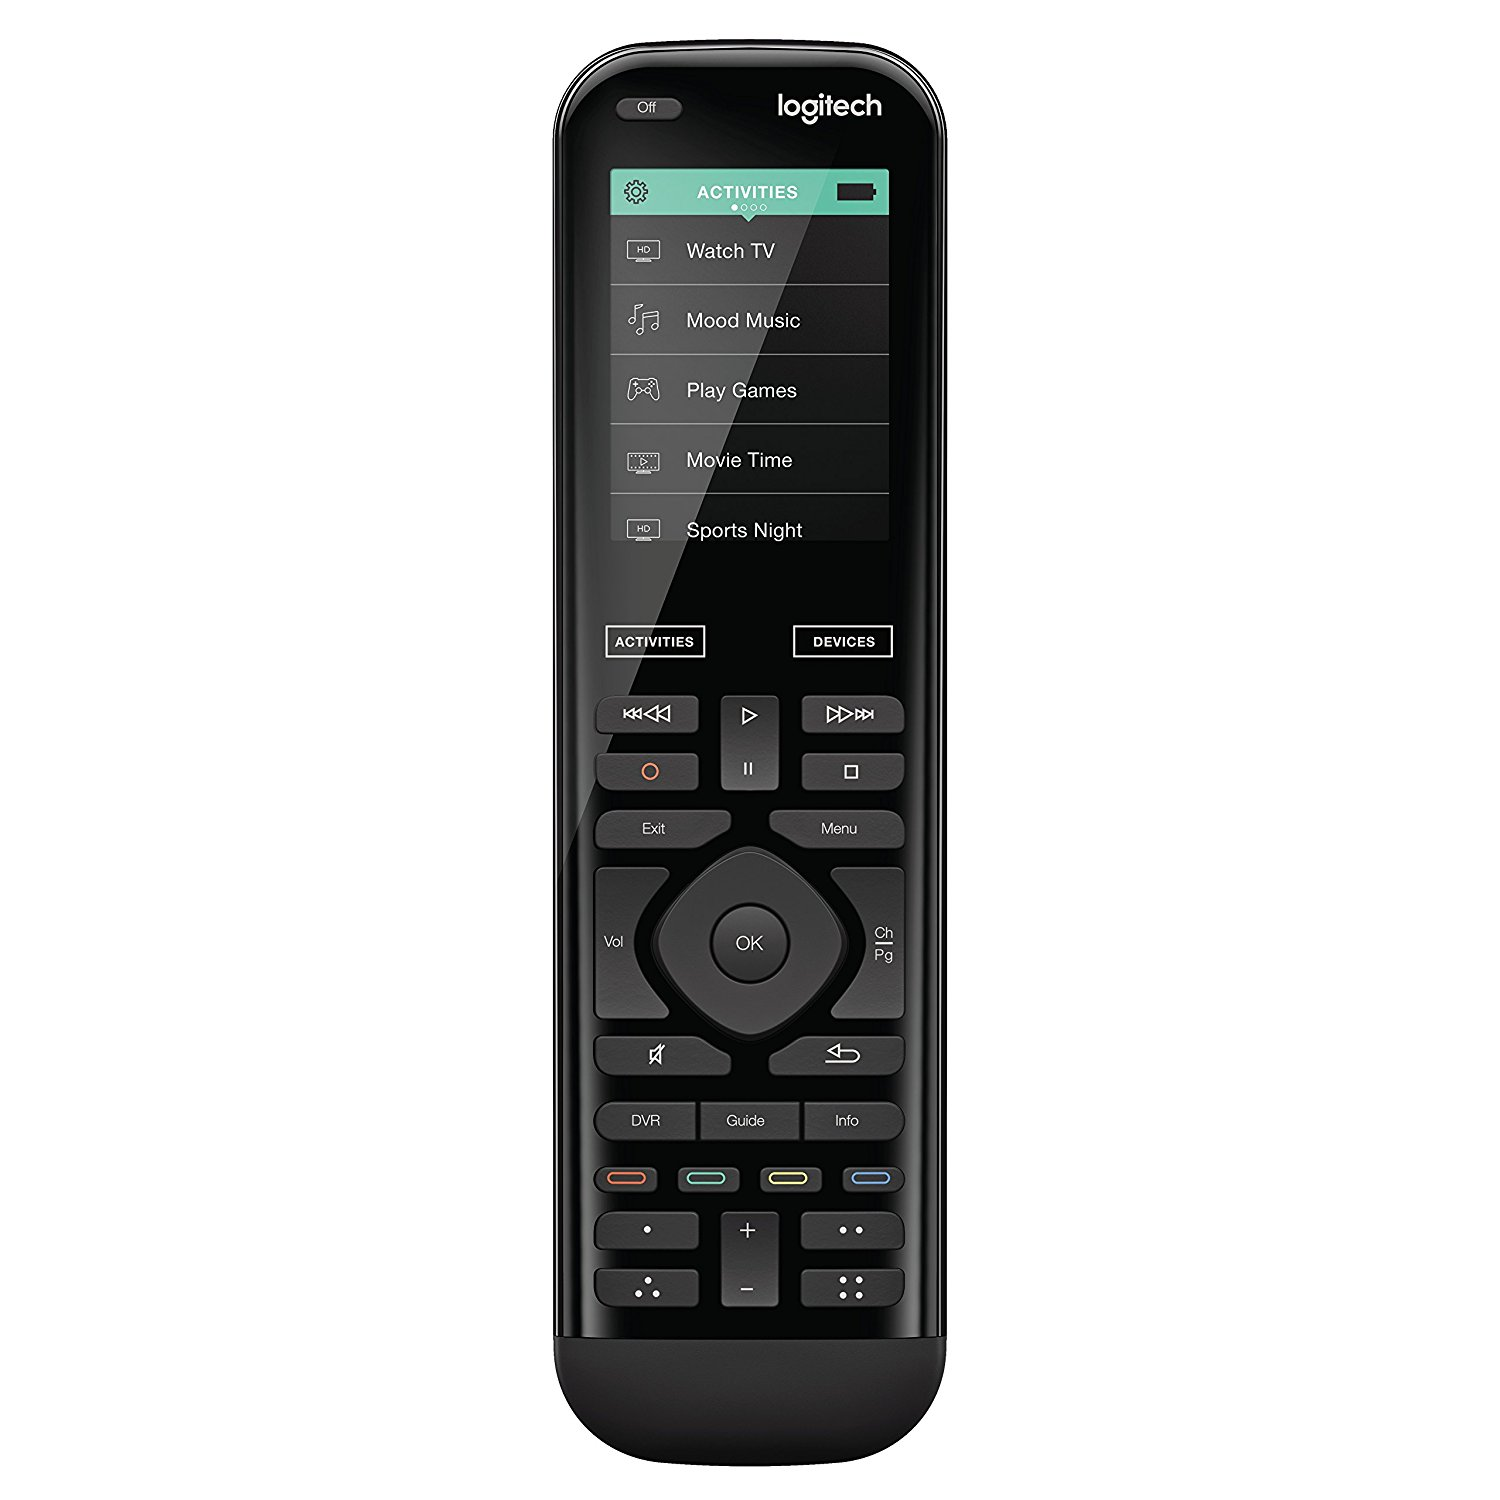 Use [Logitech's Harmony 950 Advanced Remote](https://www.amazon.com/Logitech-Advanced-Harmony-Control-915-000259/dp/B01H0GVCPI?tag=toolstoysdeals-20) to control over 270,000 different brands of devices and TVs.